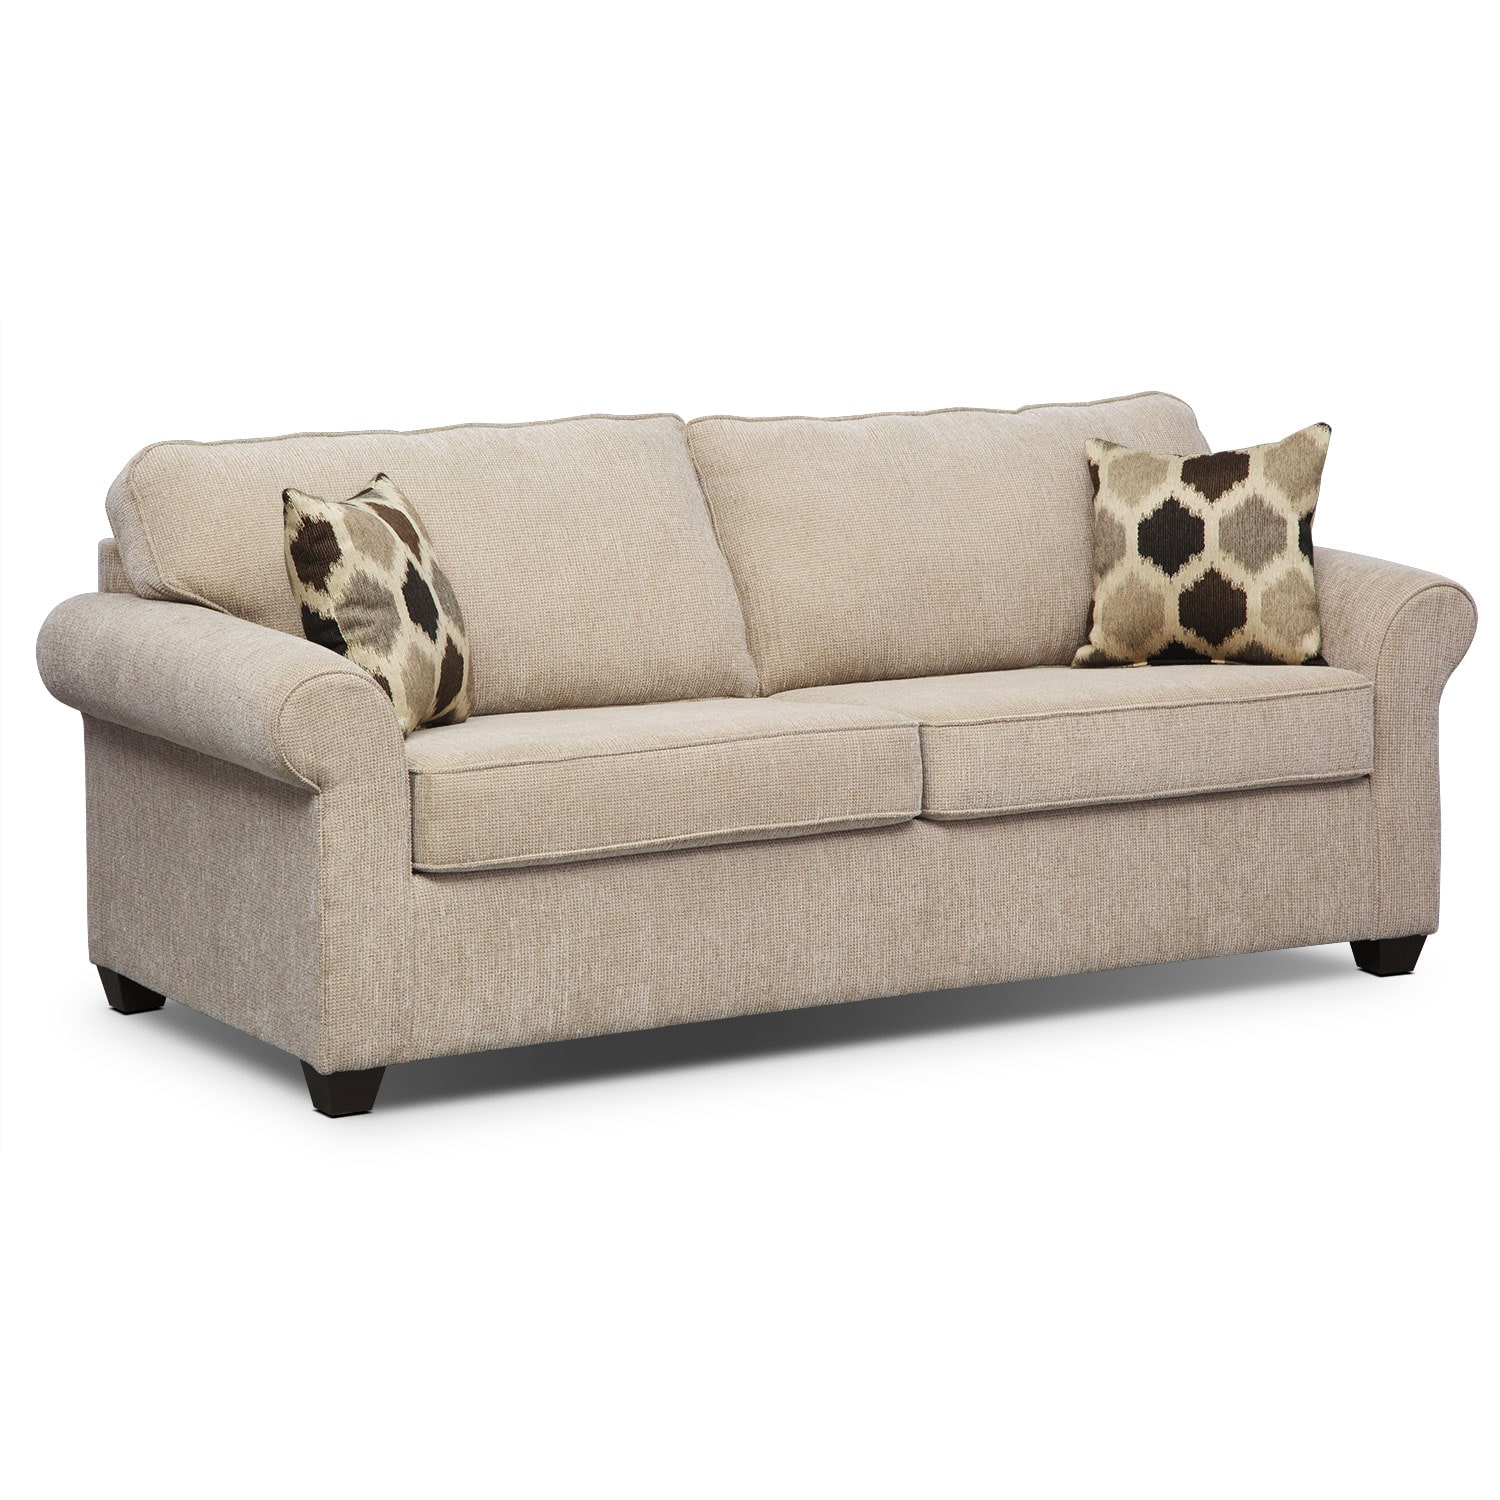 Fletcher Queen Innerspring Sleeper Sofa - Beige